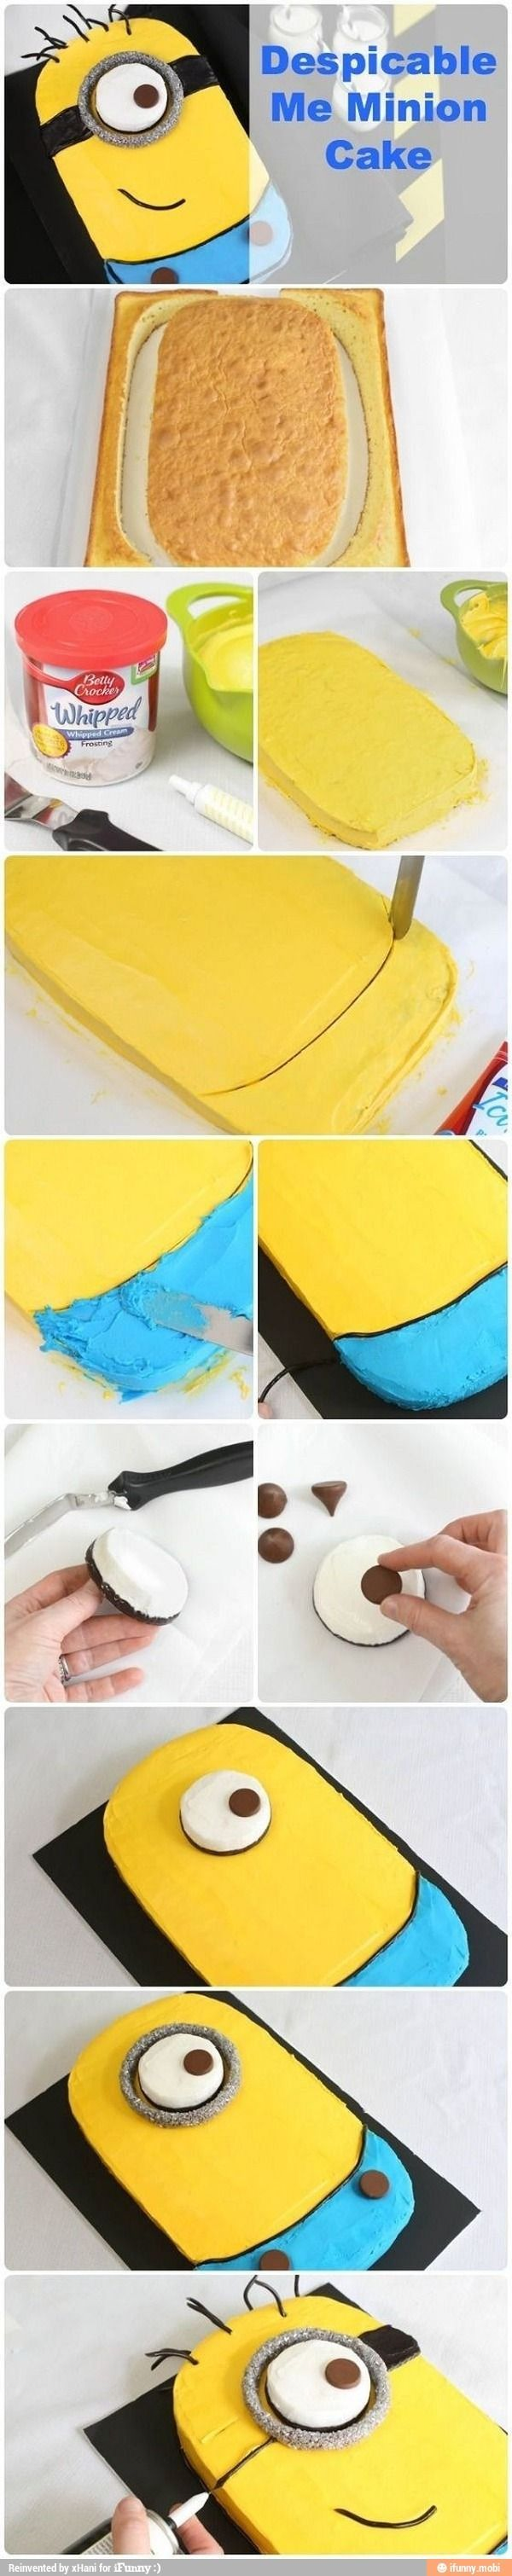 Despicable Me Minion cake.. mom since I'll be home for my birthday you can make this cake! Or at least try!!